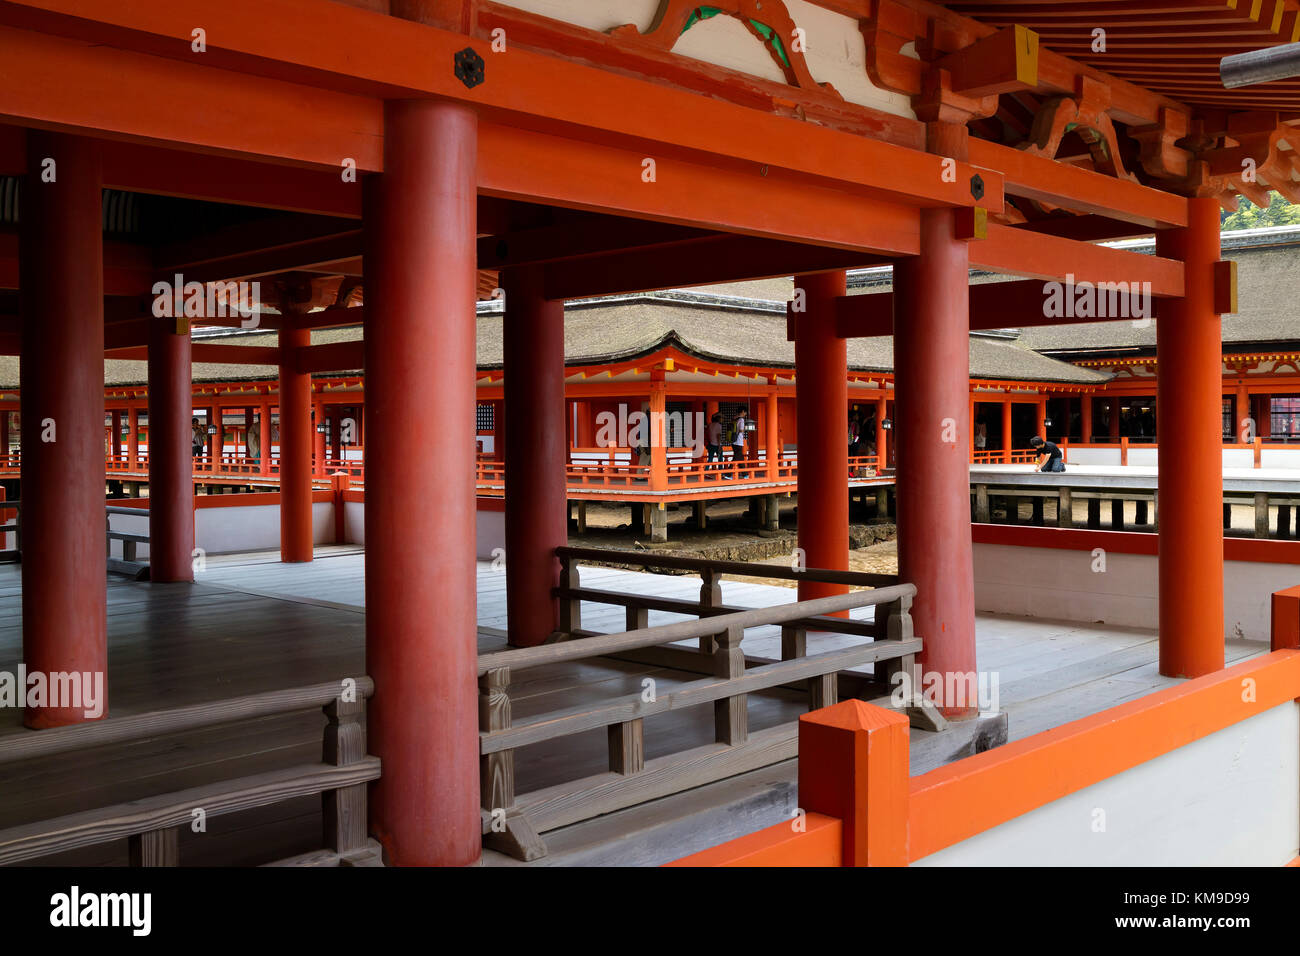 Miyajima - Japan, May 26, 2017: Long corridors and pillars at the famous the Itsukushima Shrine on Miyajima - Stock Image